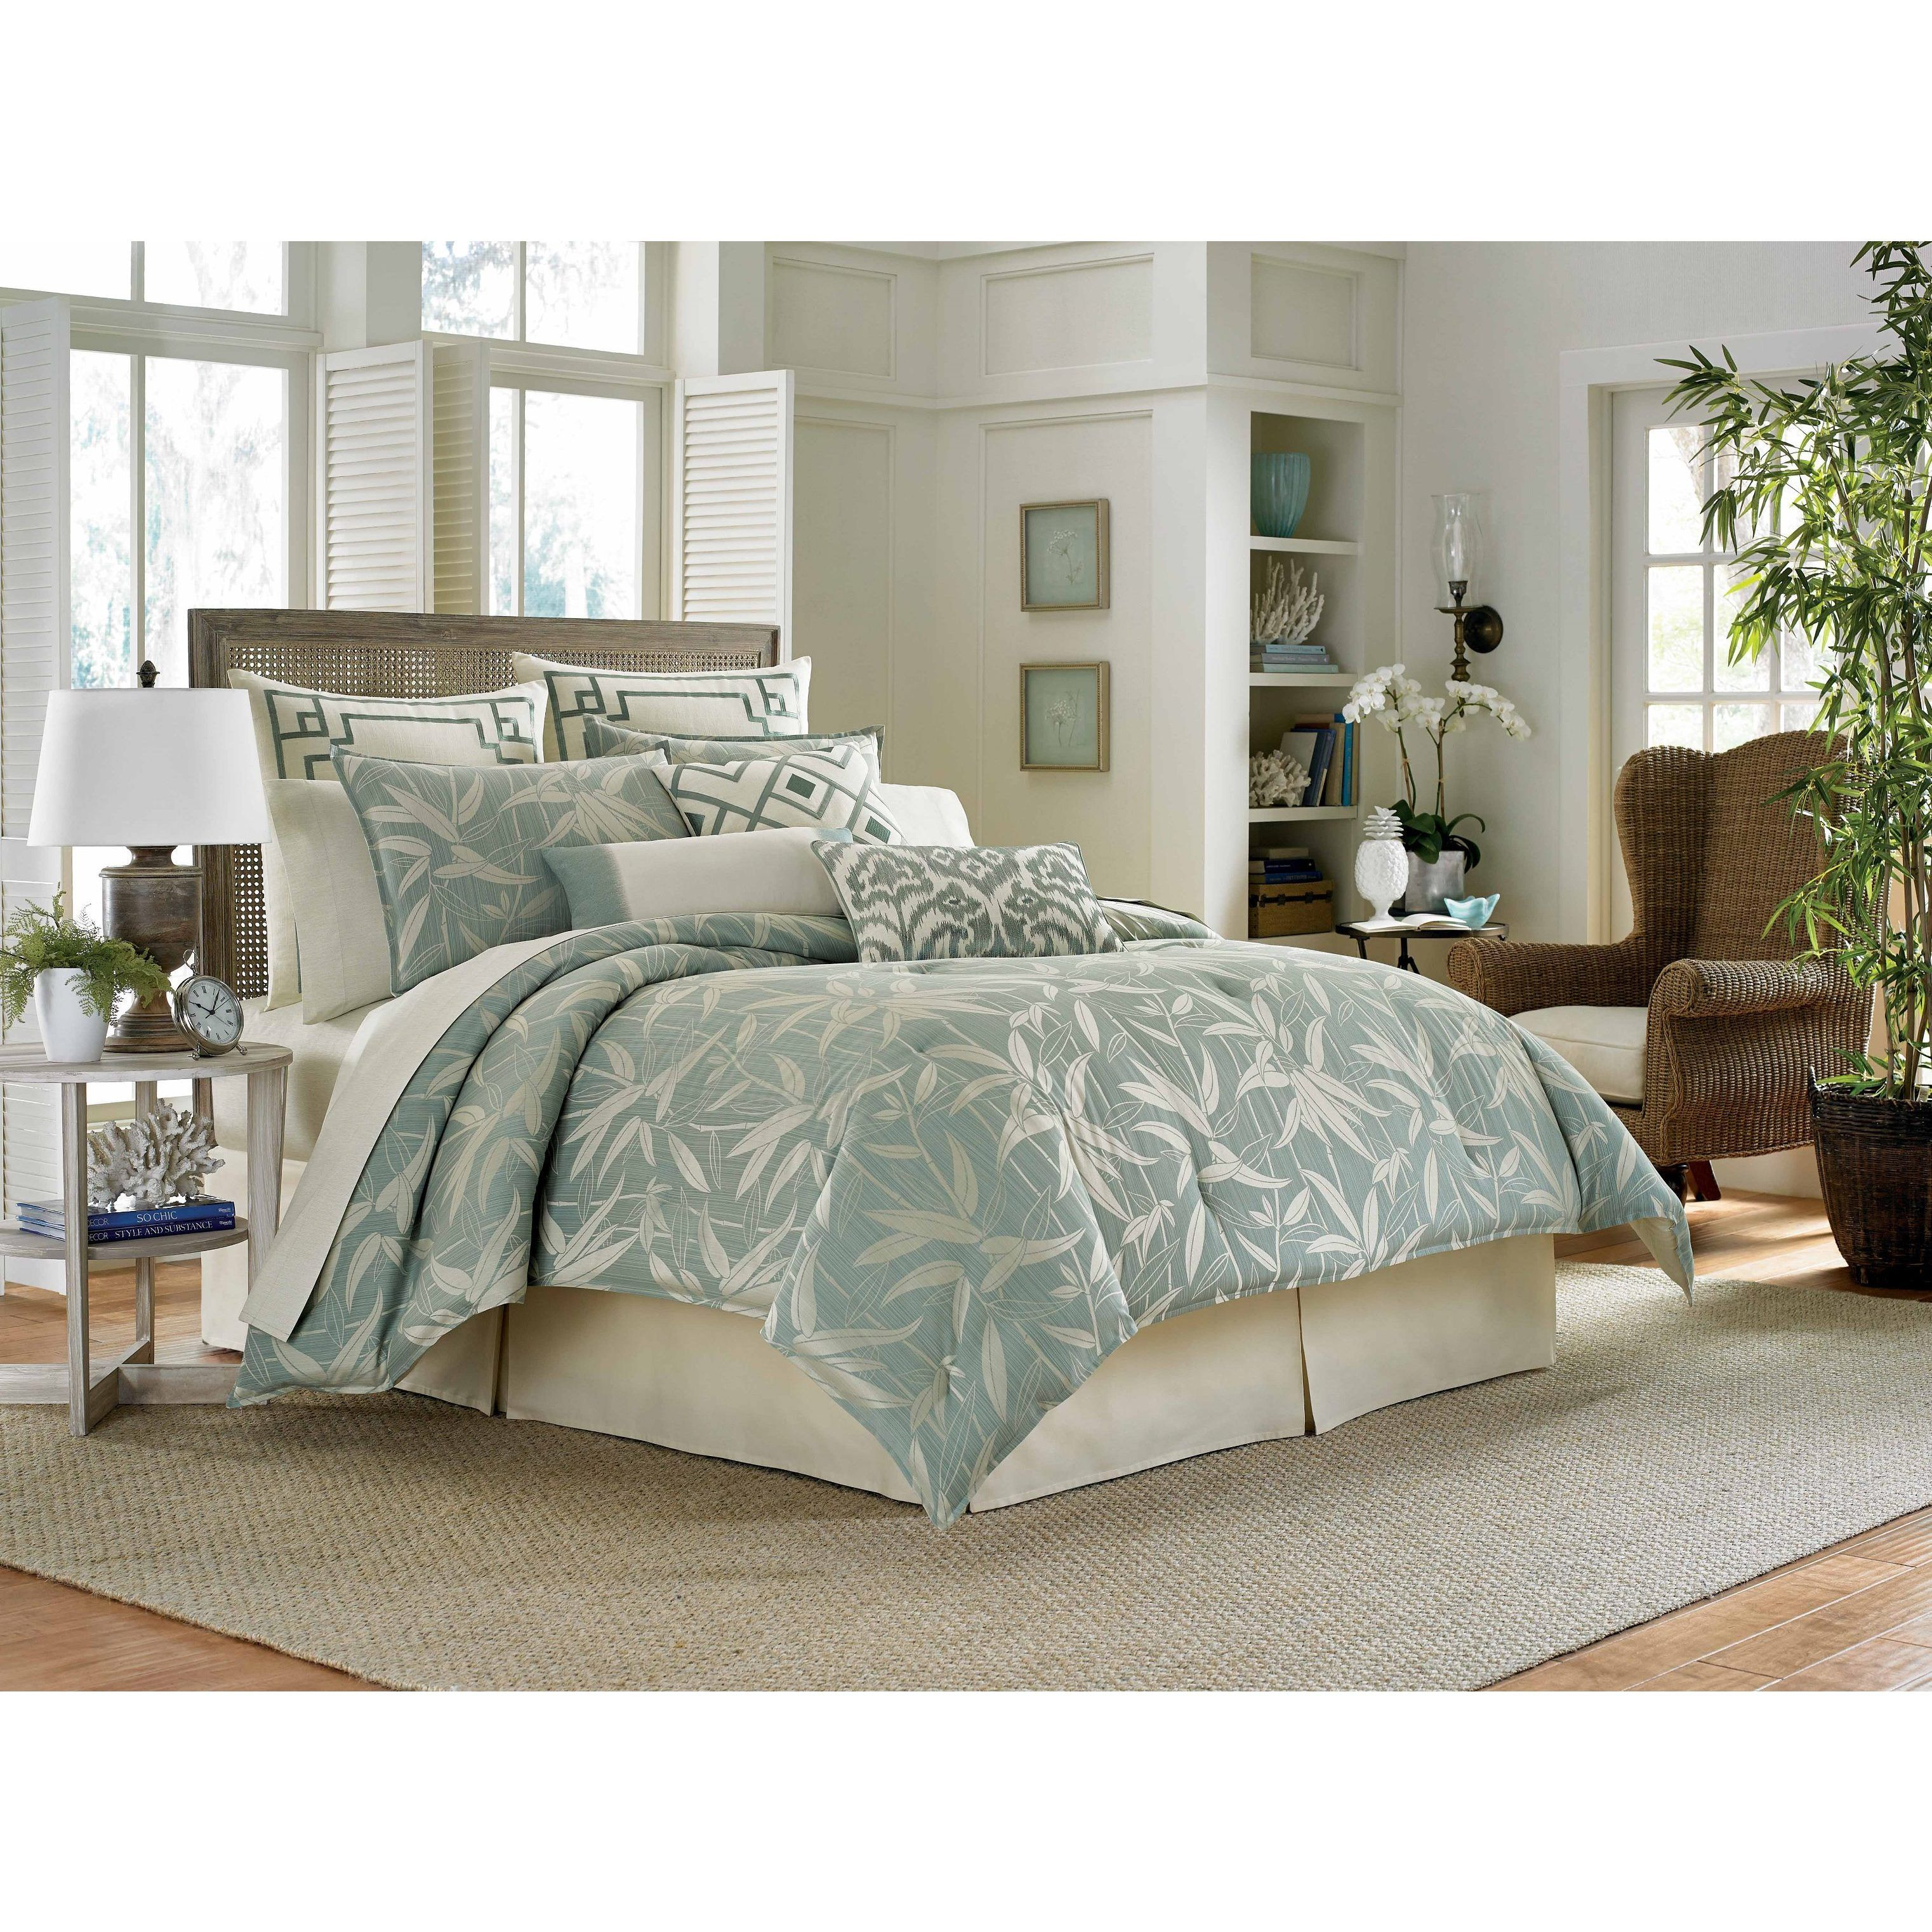 this tommy the duvet a tropical breezer love sea paradise in beautiful seaglass your evoked we scala pin breezes la bahama bedroom with set comforter by king re create